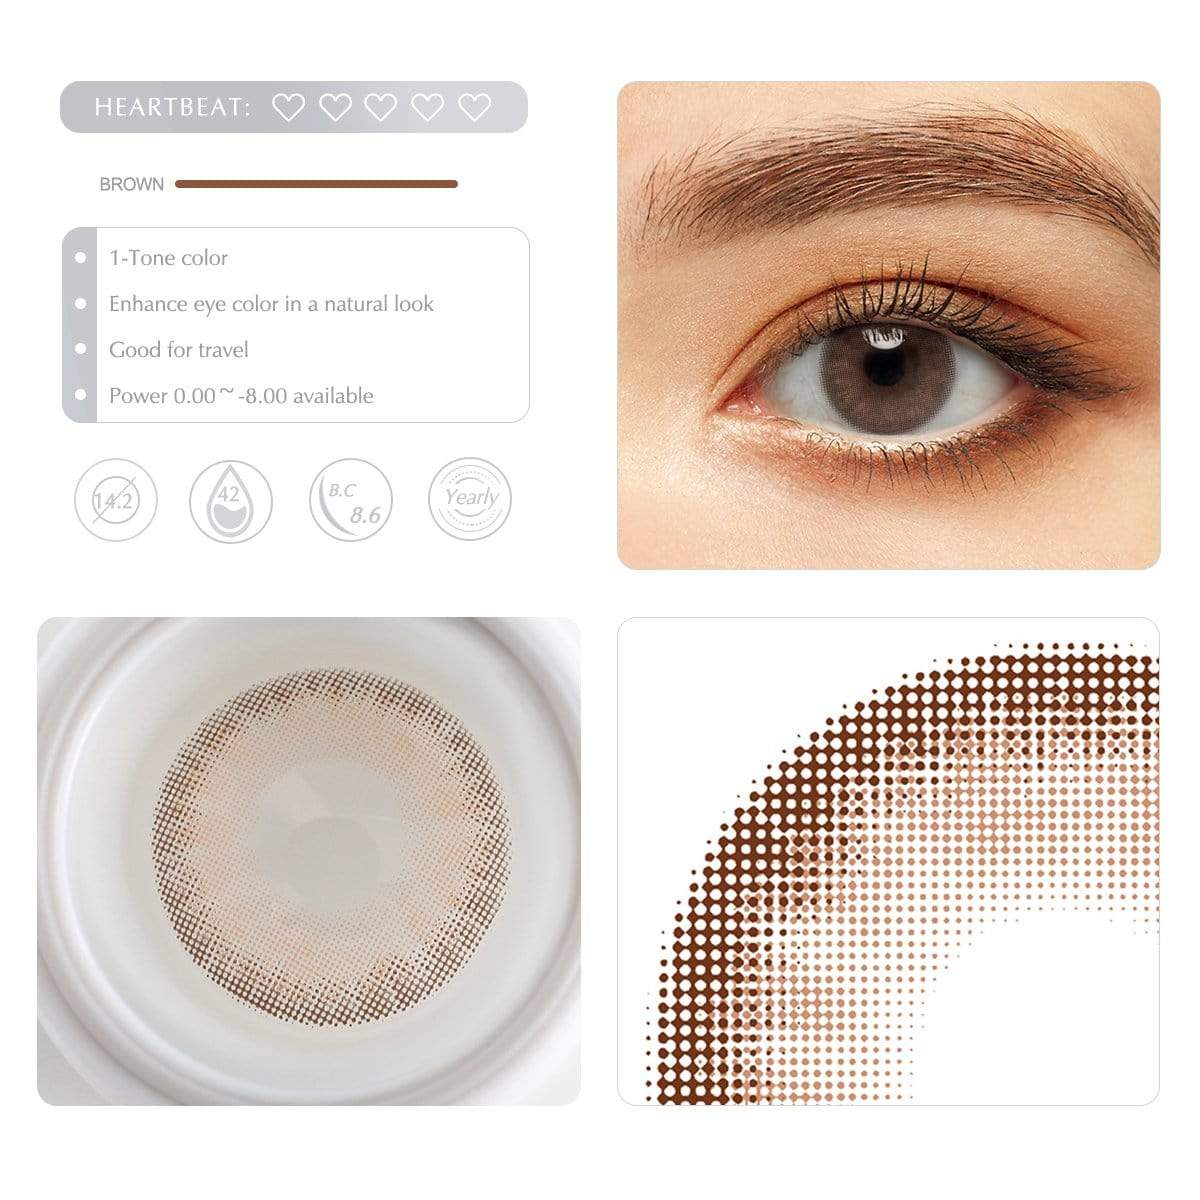 Caramel brown contact lens details display rederings